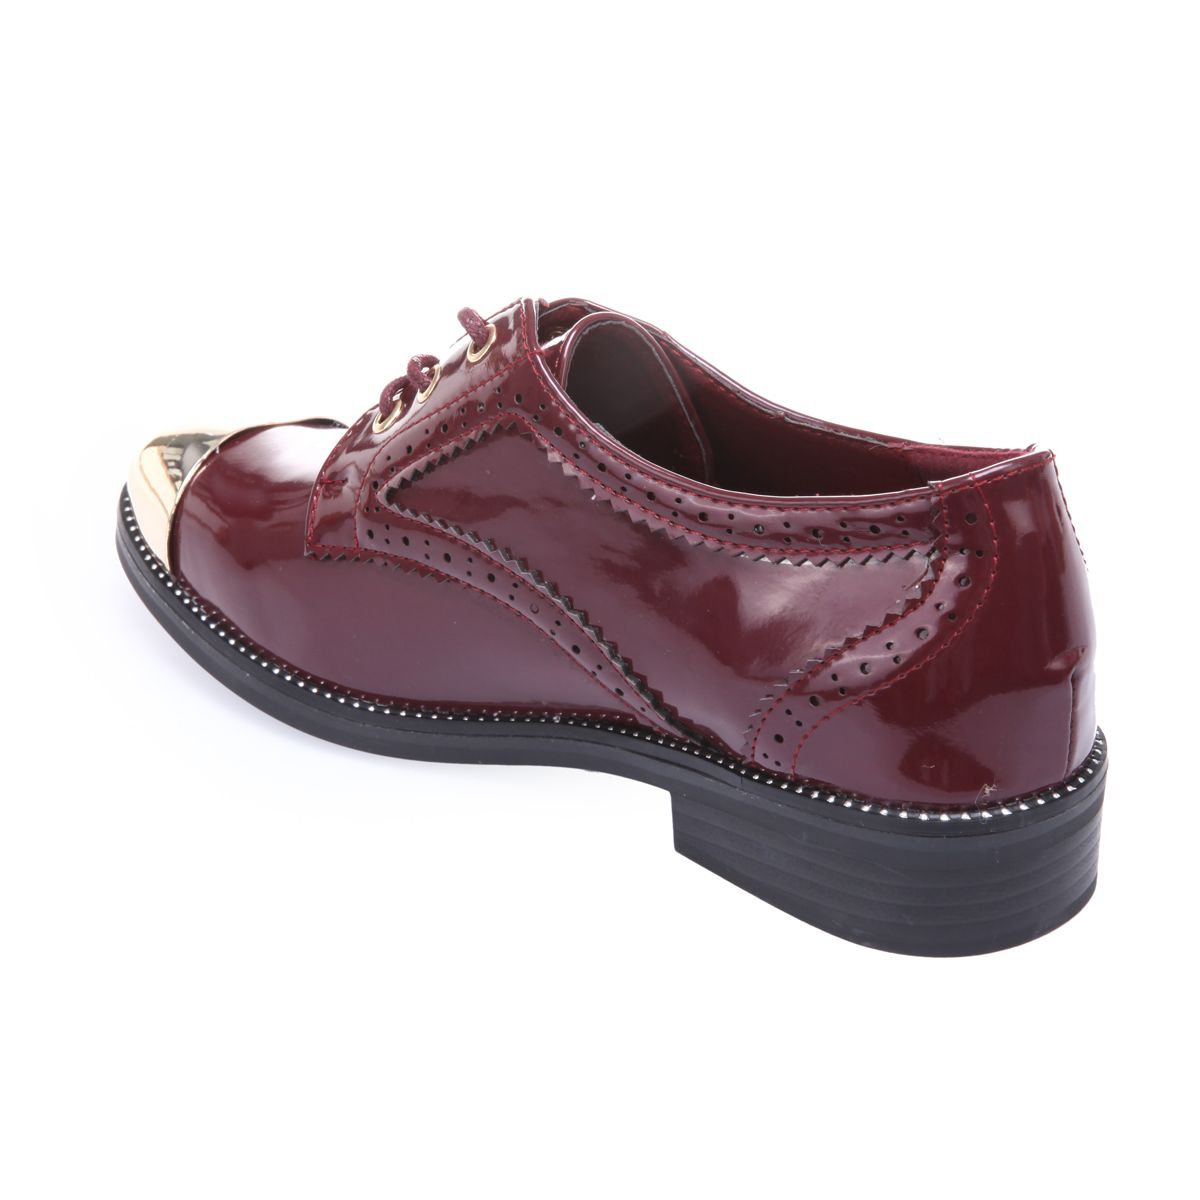 Derbies bordeaux vernis à bout doré